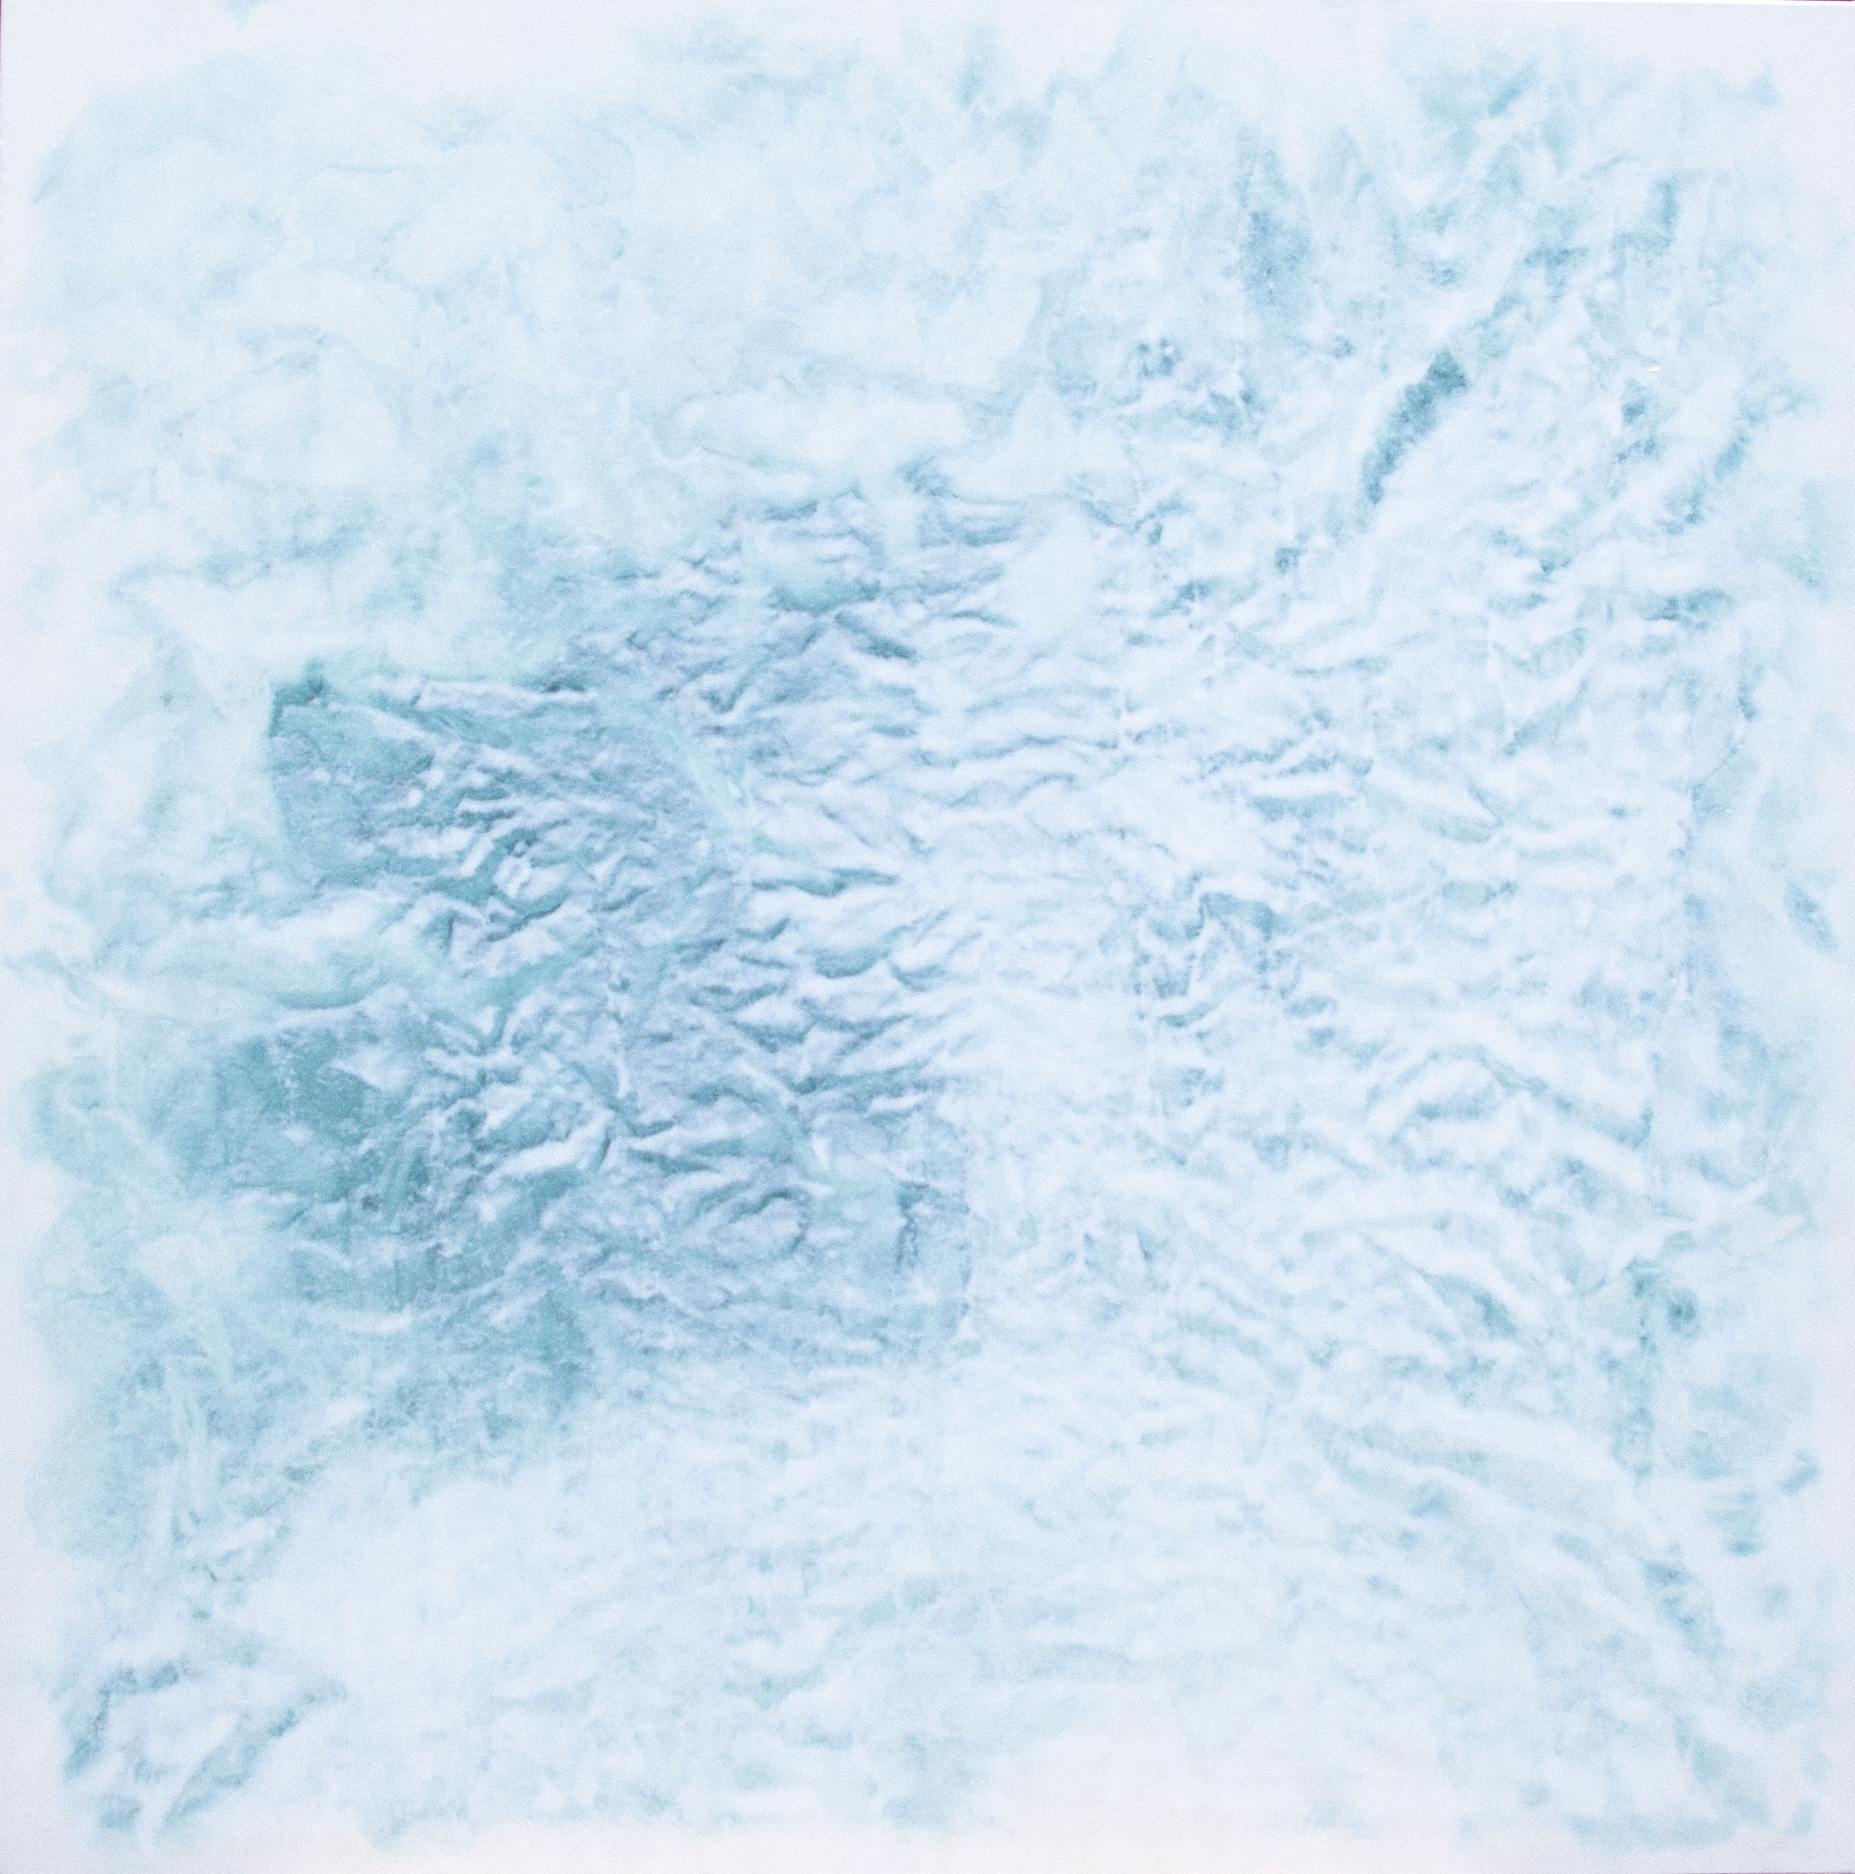 "2017 ""Antarctica"" #1360 pigment, oil, alkyd on canvas (Cobalt Green Xtra Blue-Titanium White) 48 x 48 inches 121.92 x 121.92 cm © Vicky Colombet, all rights reserved."